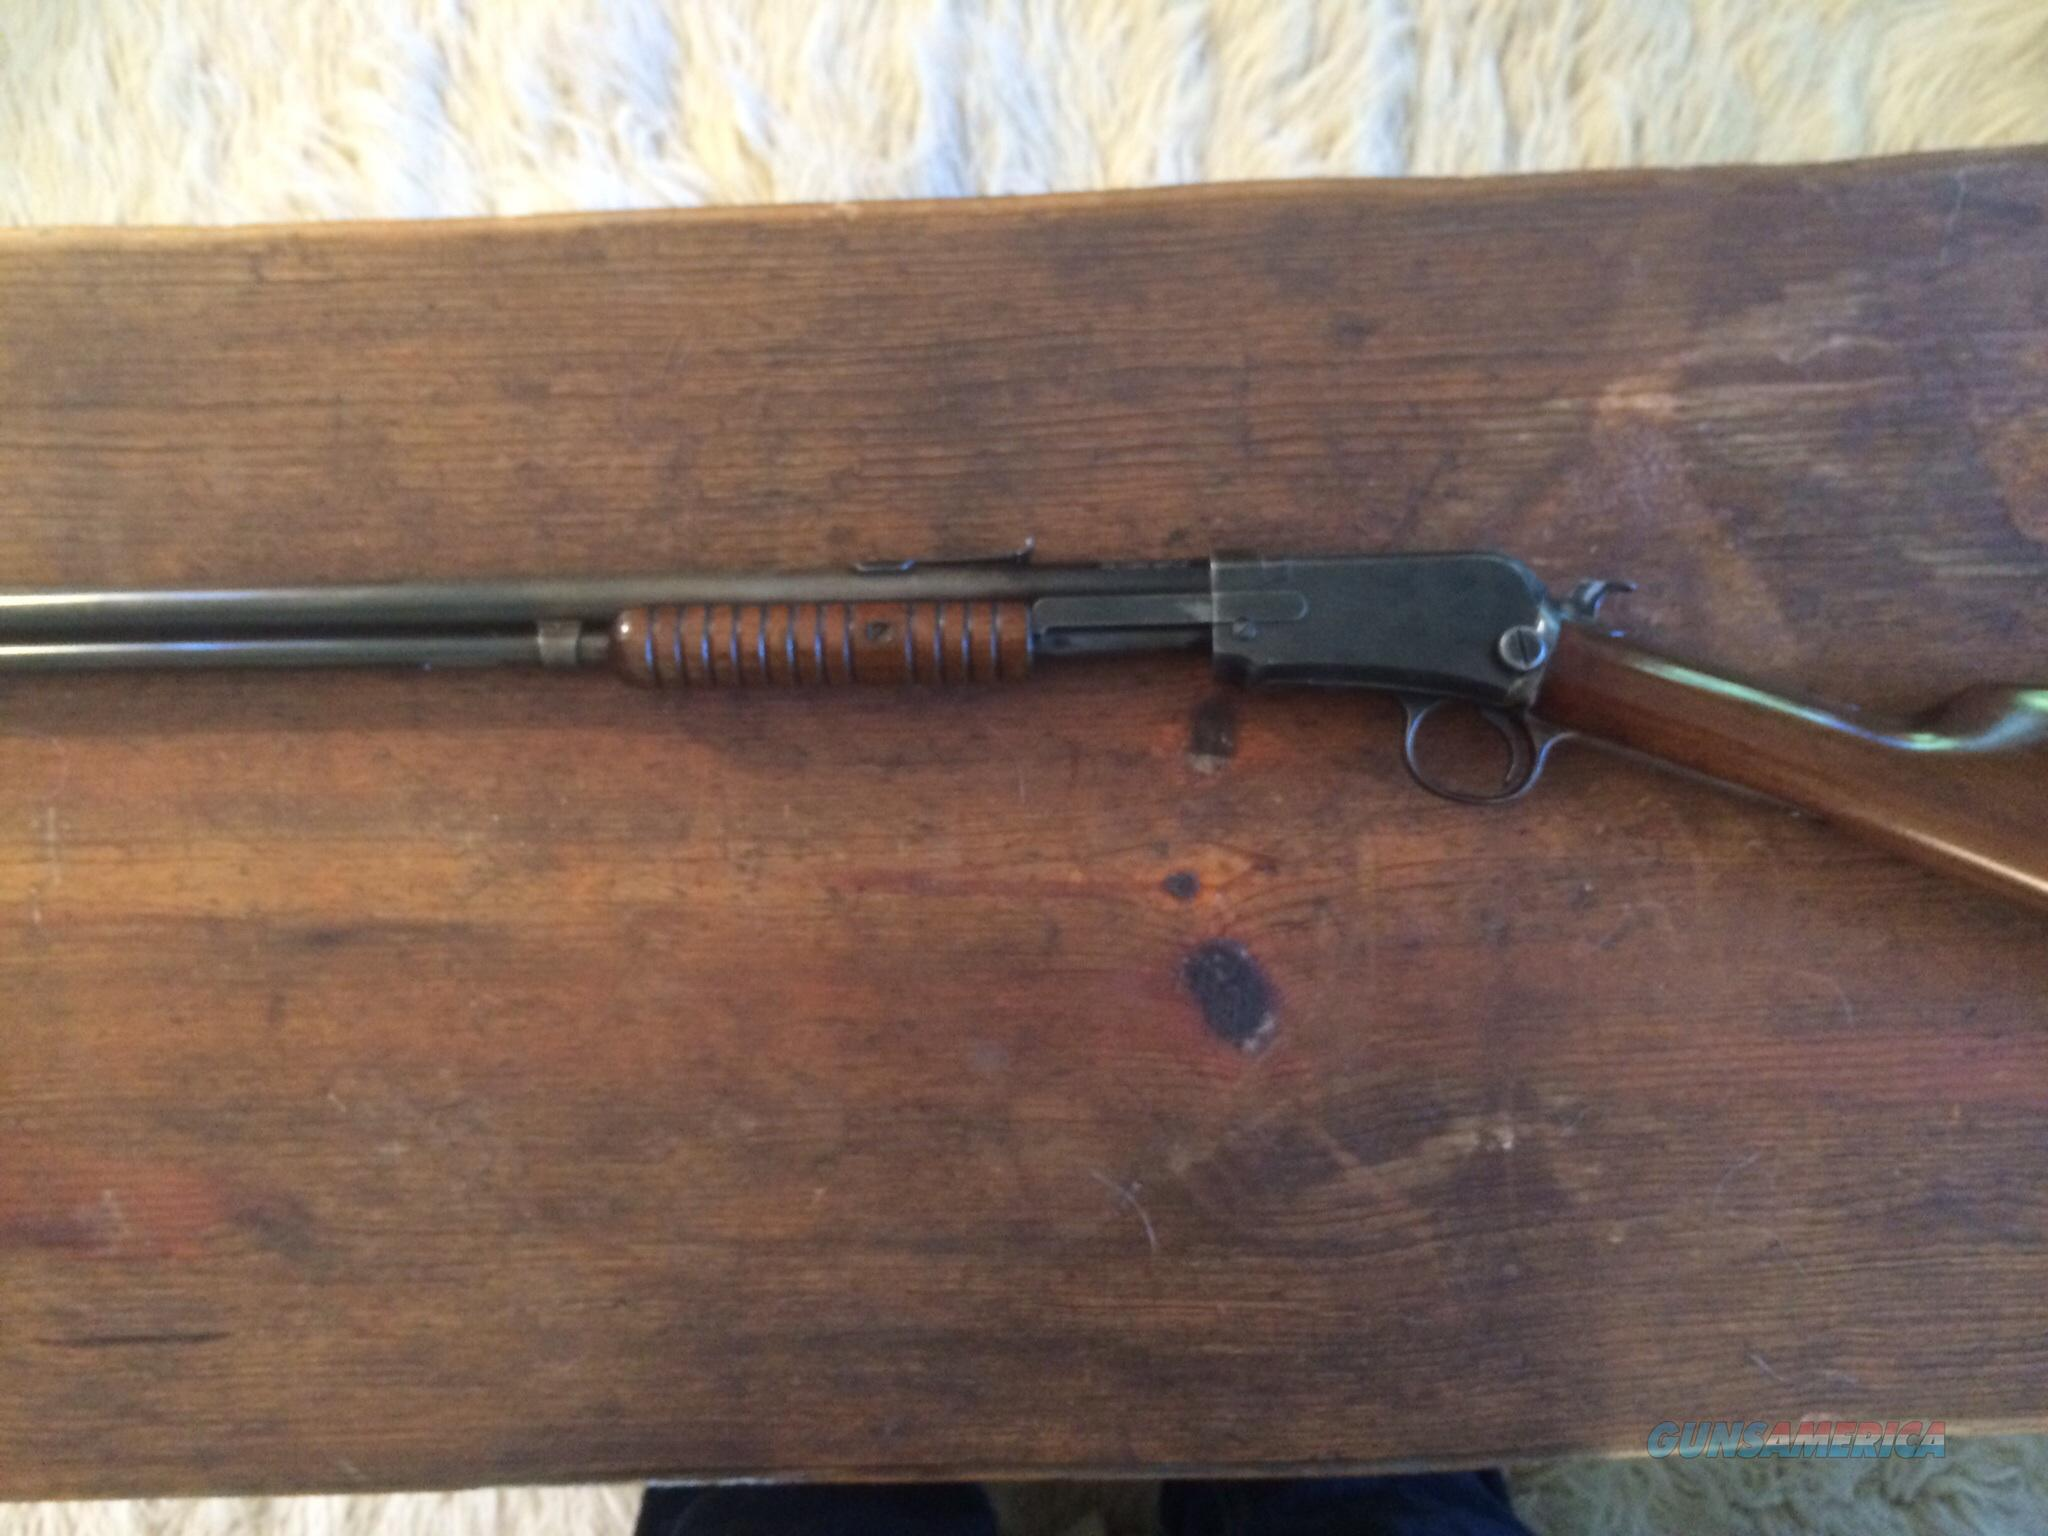 Winchester was the first American company to offer a practical 22 pumpaction rifle the Model 1890 Designed by John Moses Browning the Model 1890 aped